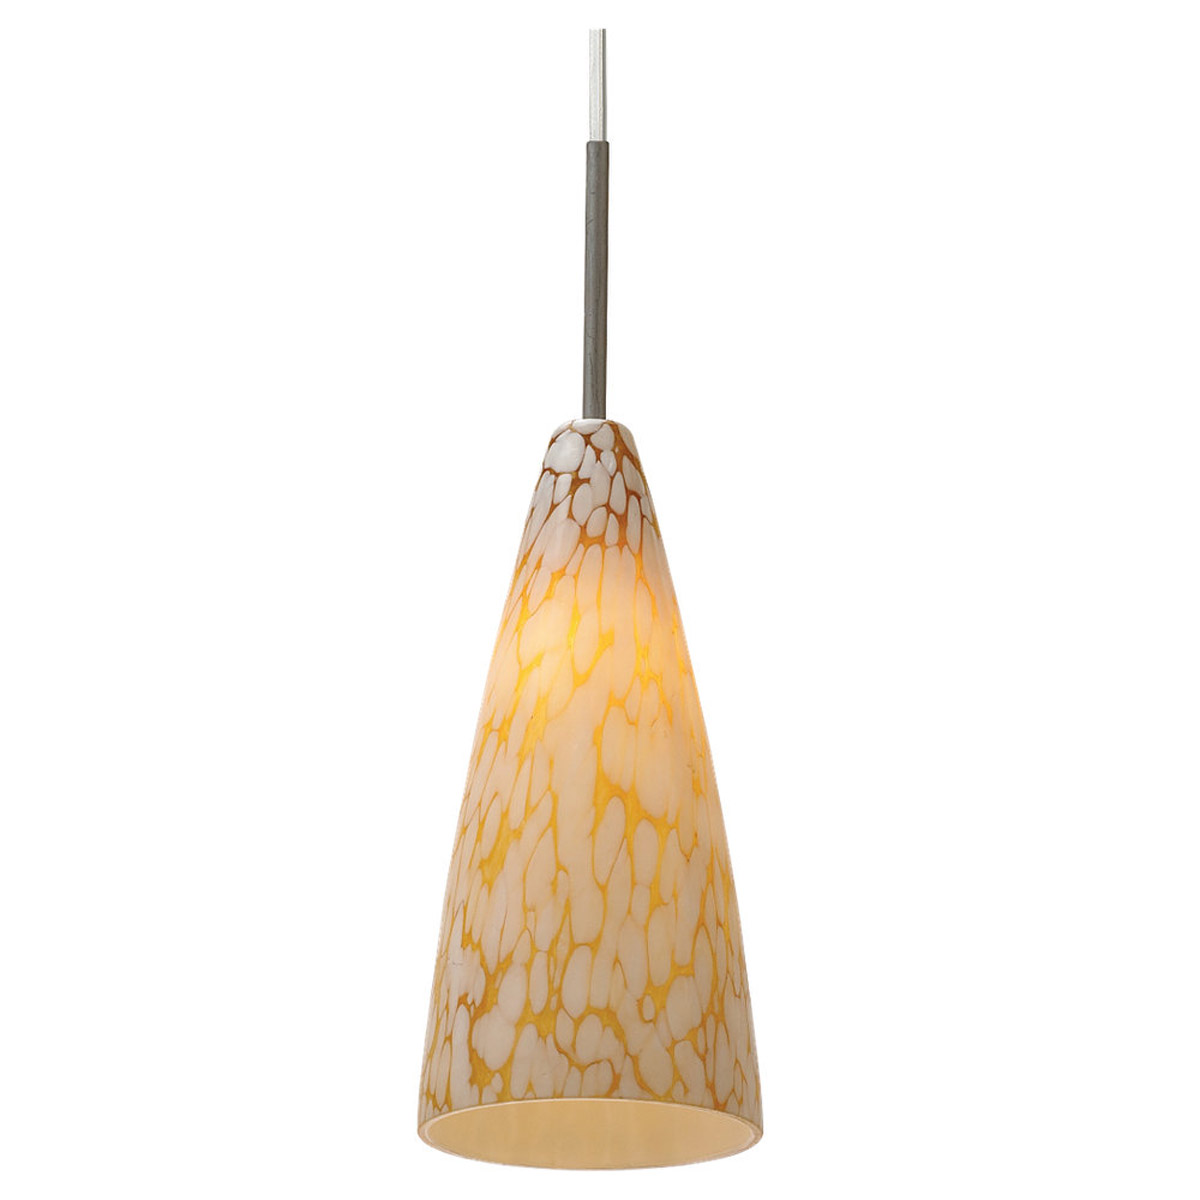 Sea Gull Lighting Ambiance Transitions 1 Light Pendant in Antique Brushed Nickel 94766-6029